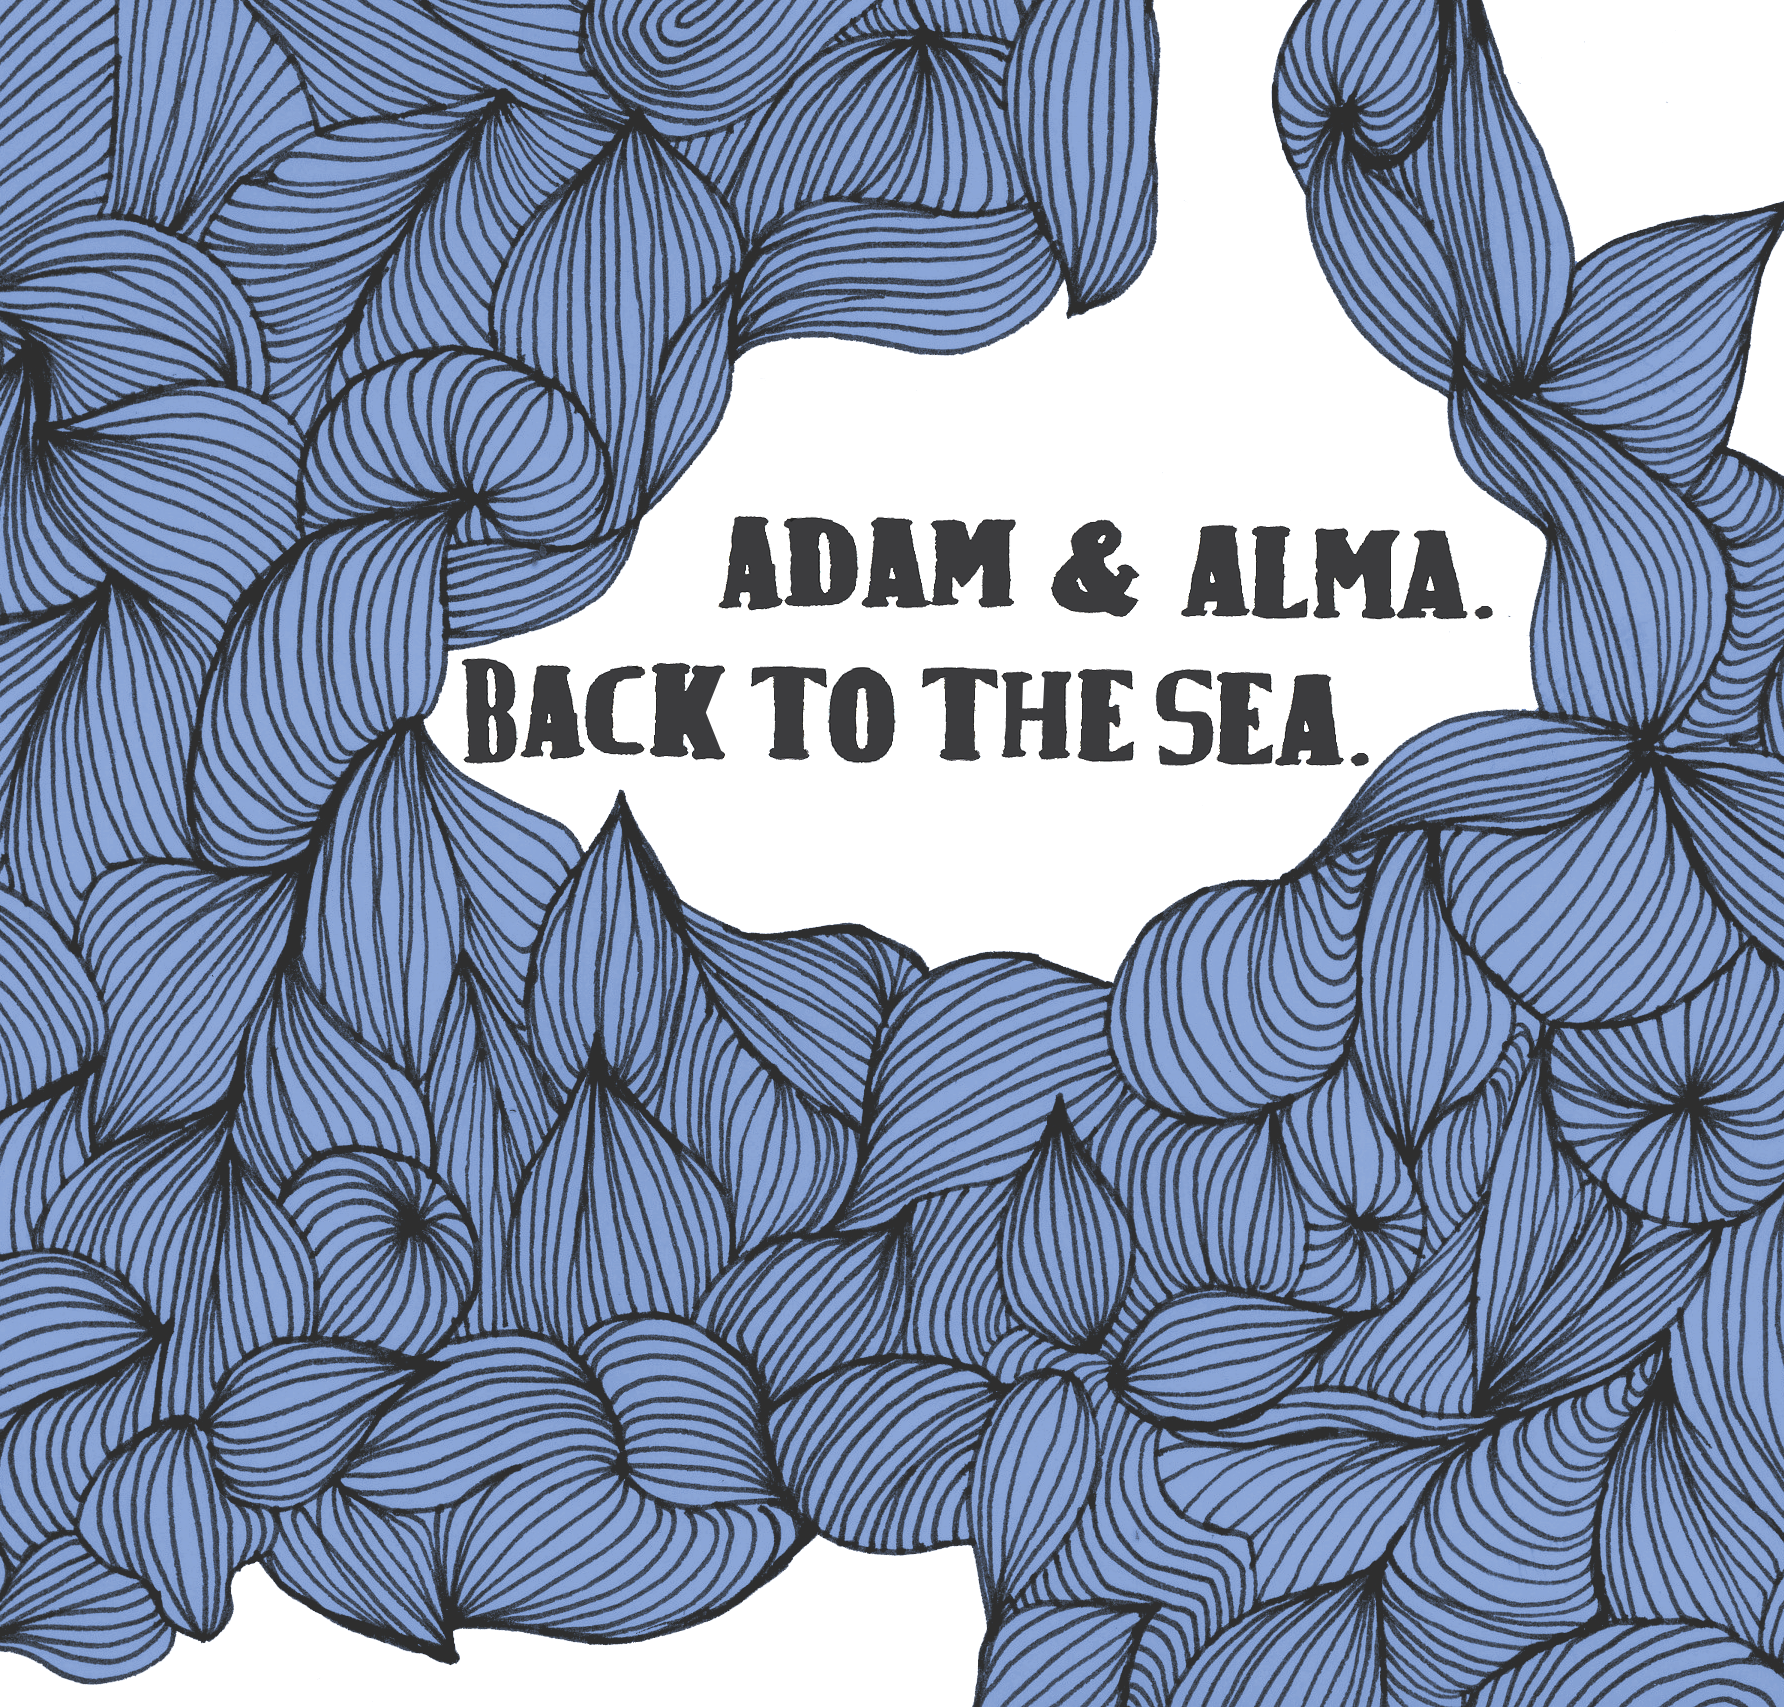 Alma Naked free music archive: adam & alma - naked